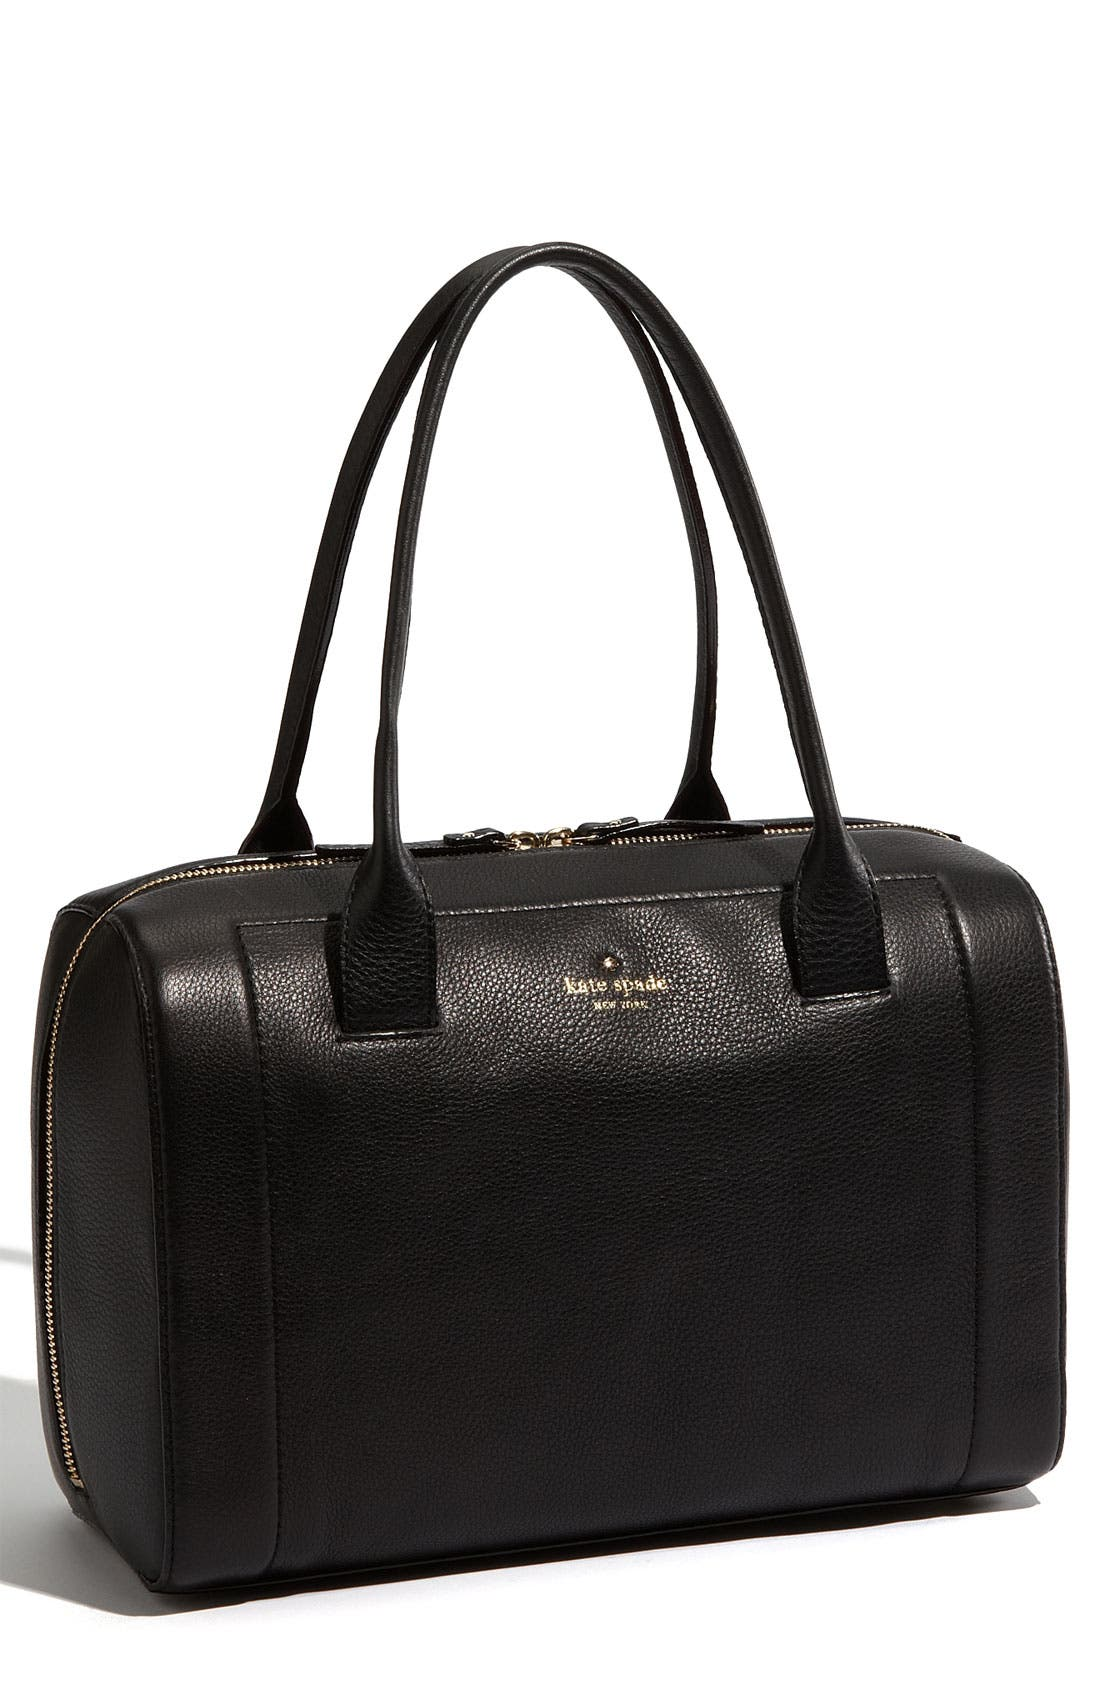 Alternate Image 1 Selected - kate spade new york 'mansfield liv' satchel